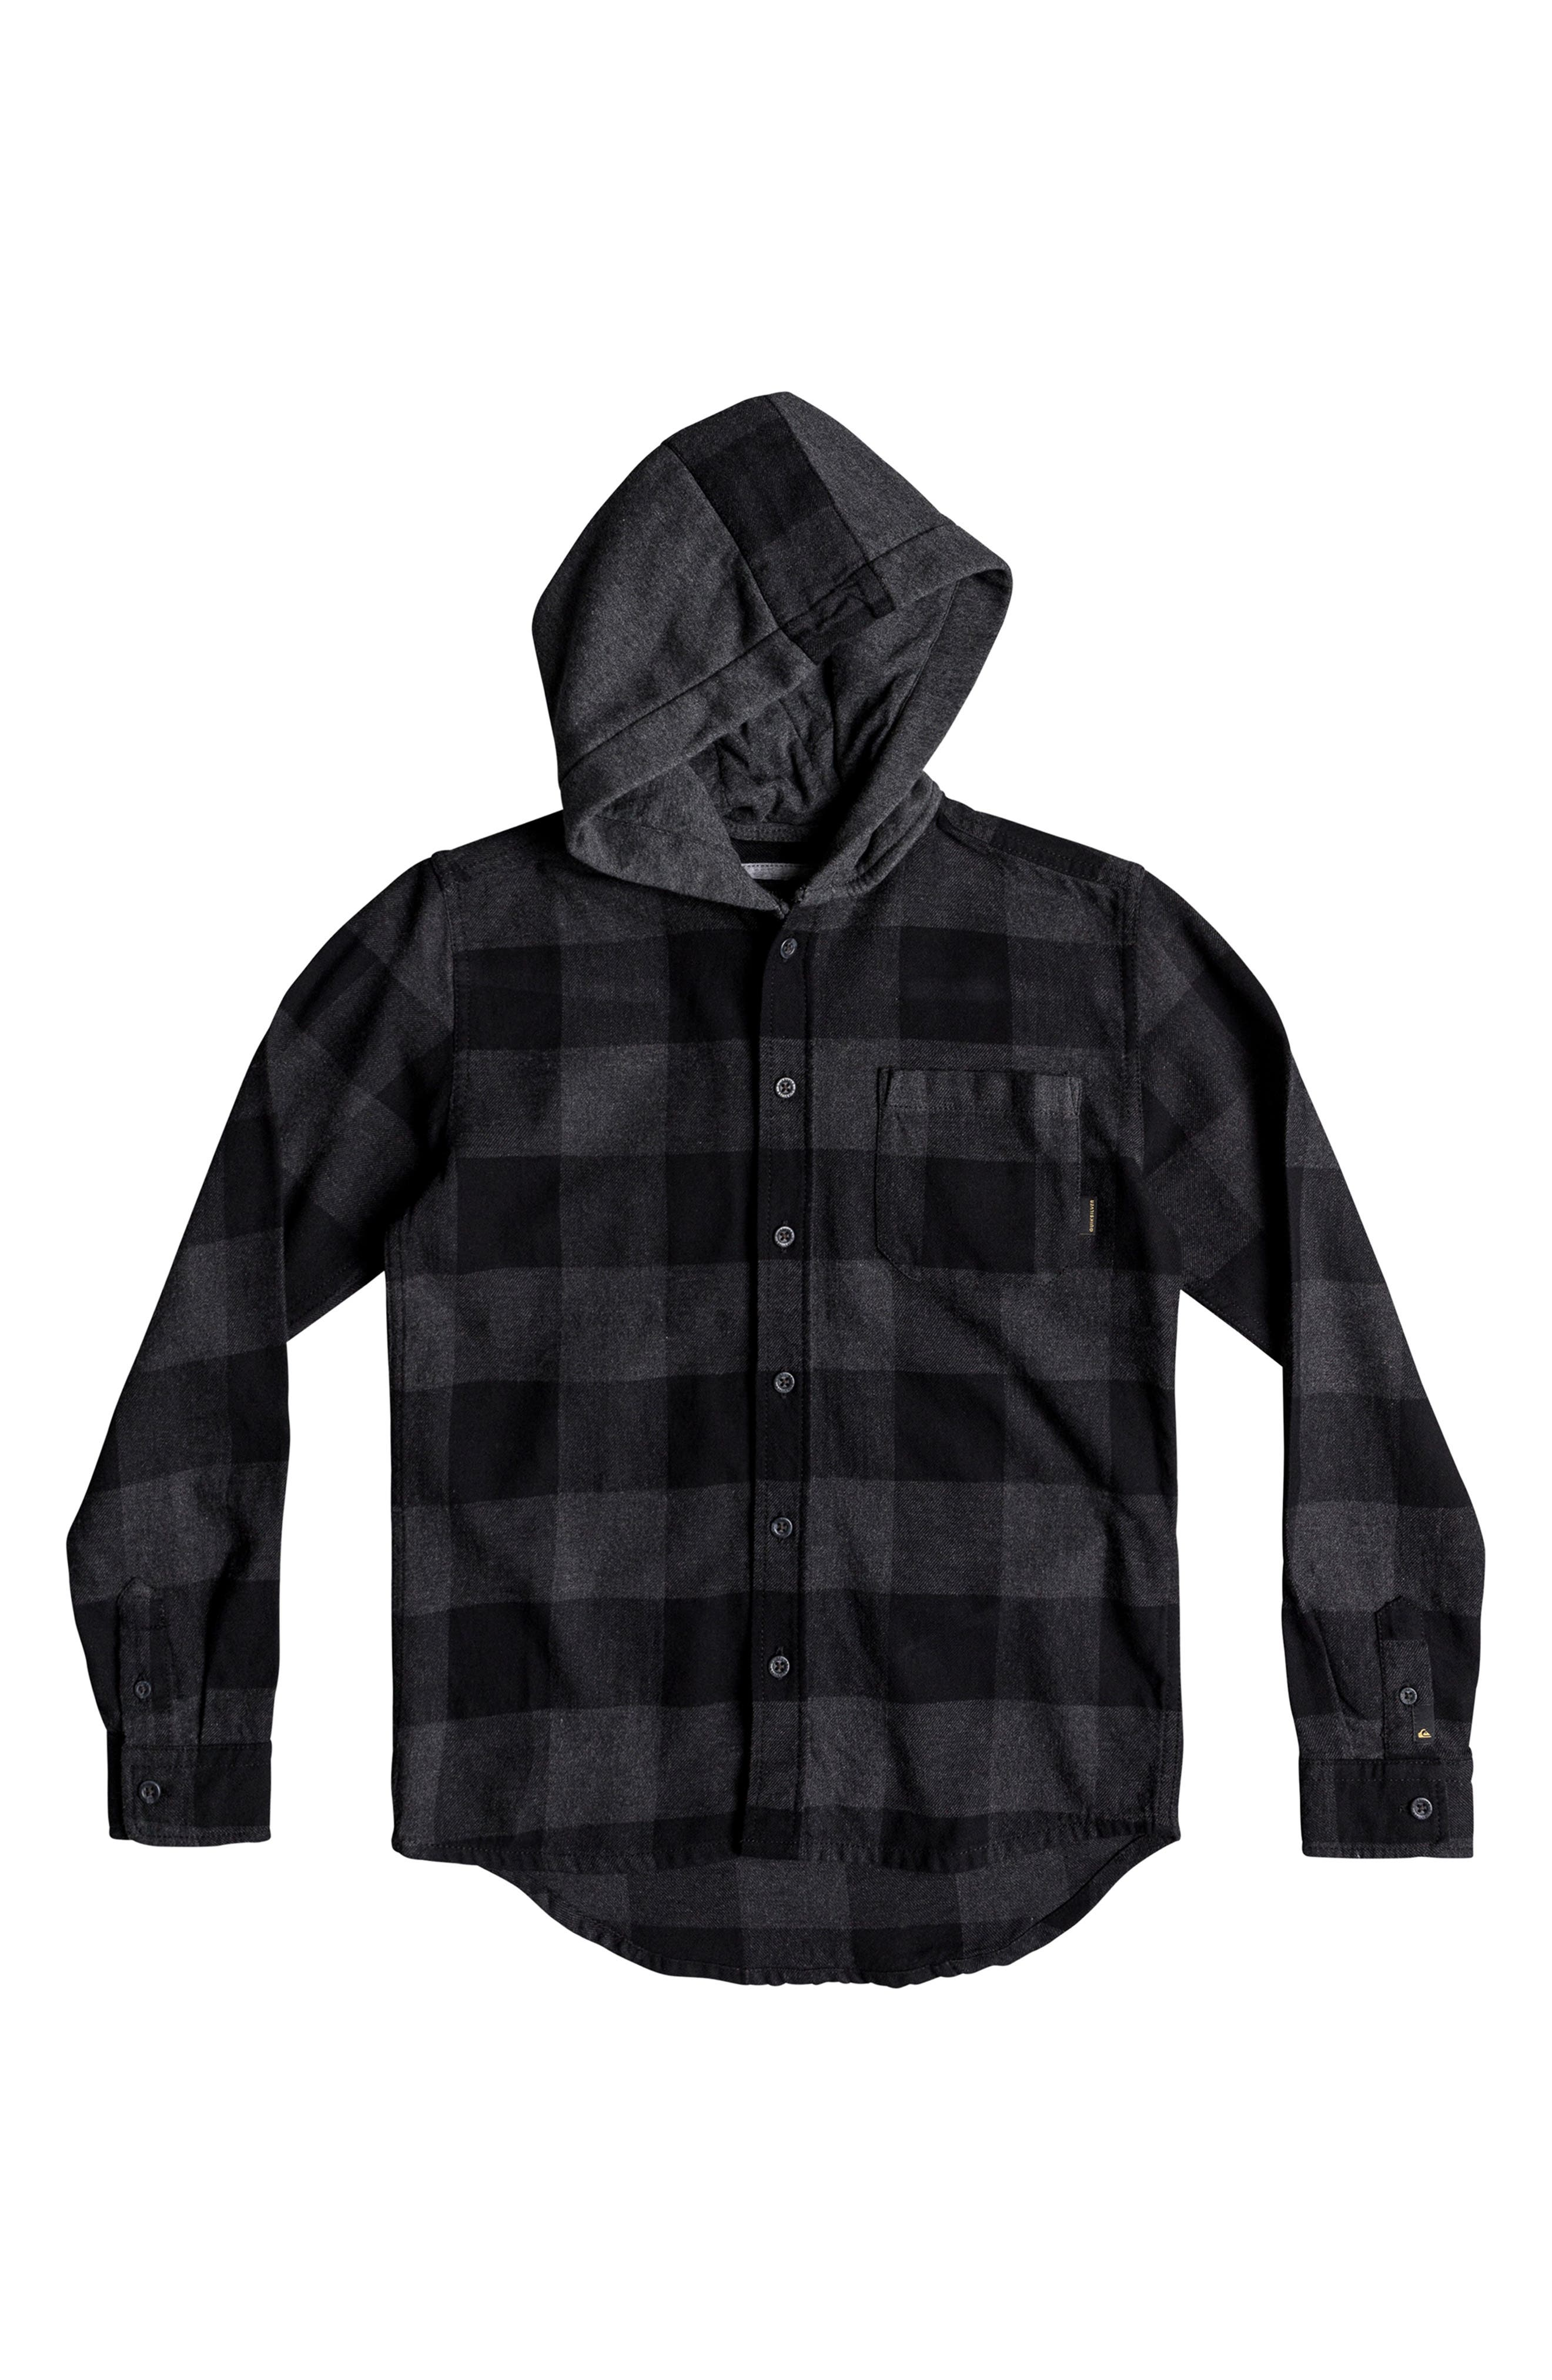 Motherfly Hooded Flannel Shirt,                             Main thumbnail 1, color,                             BLACK